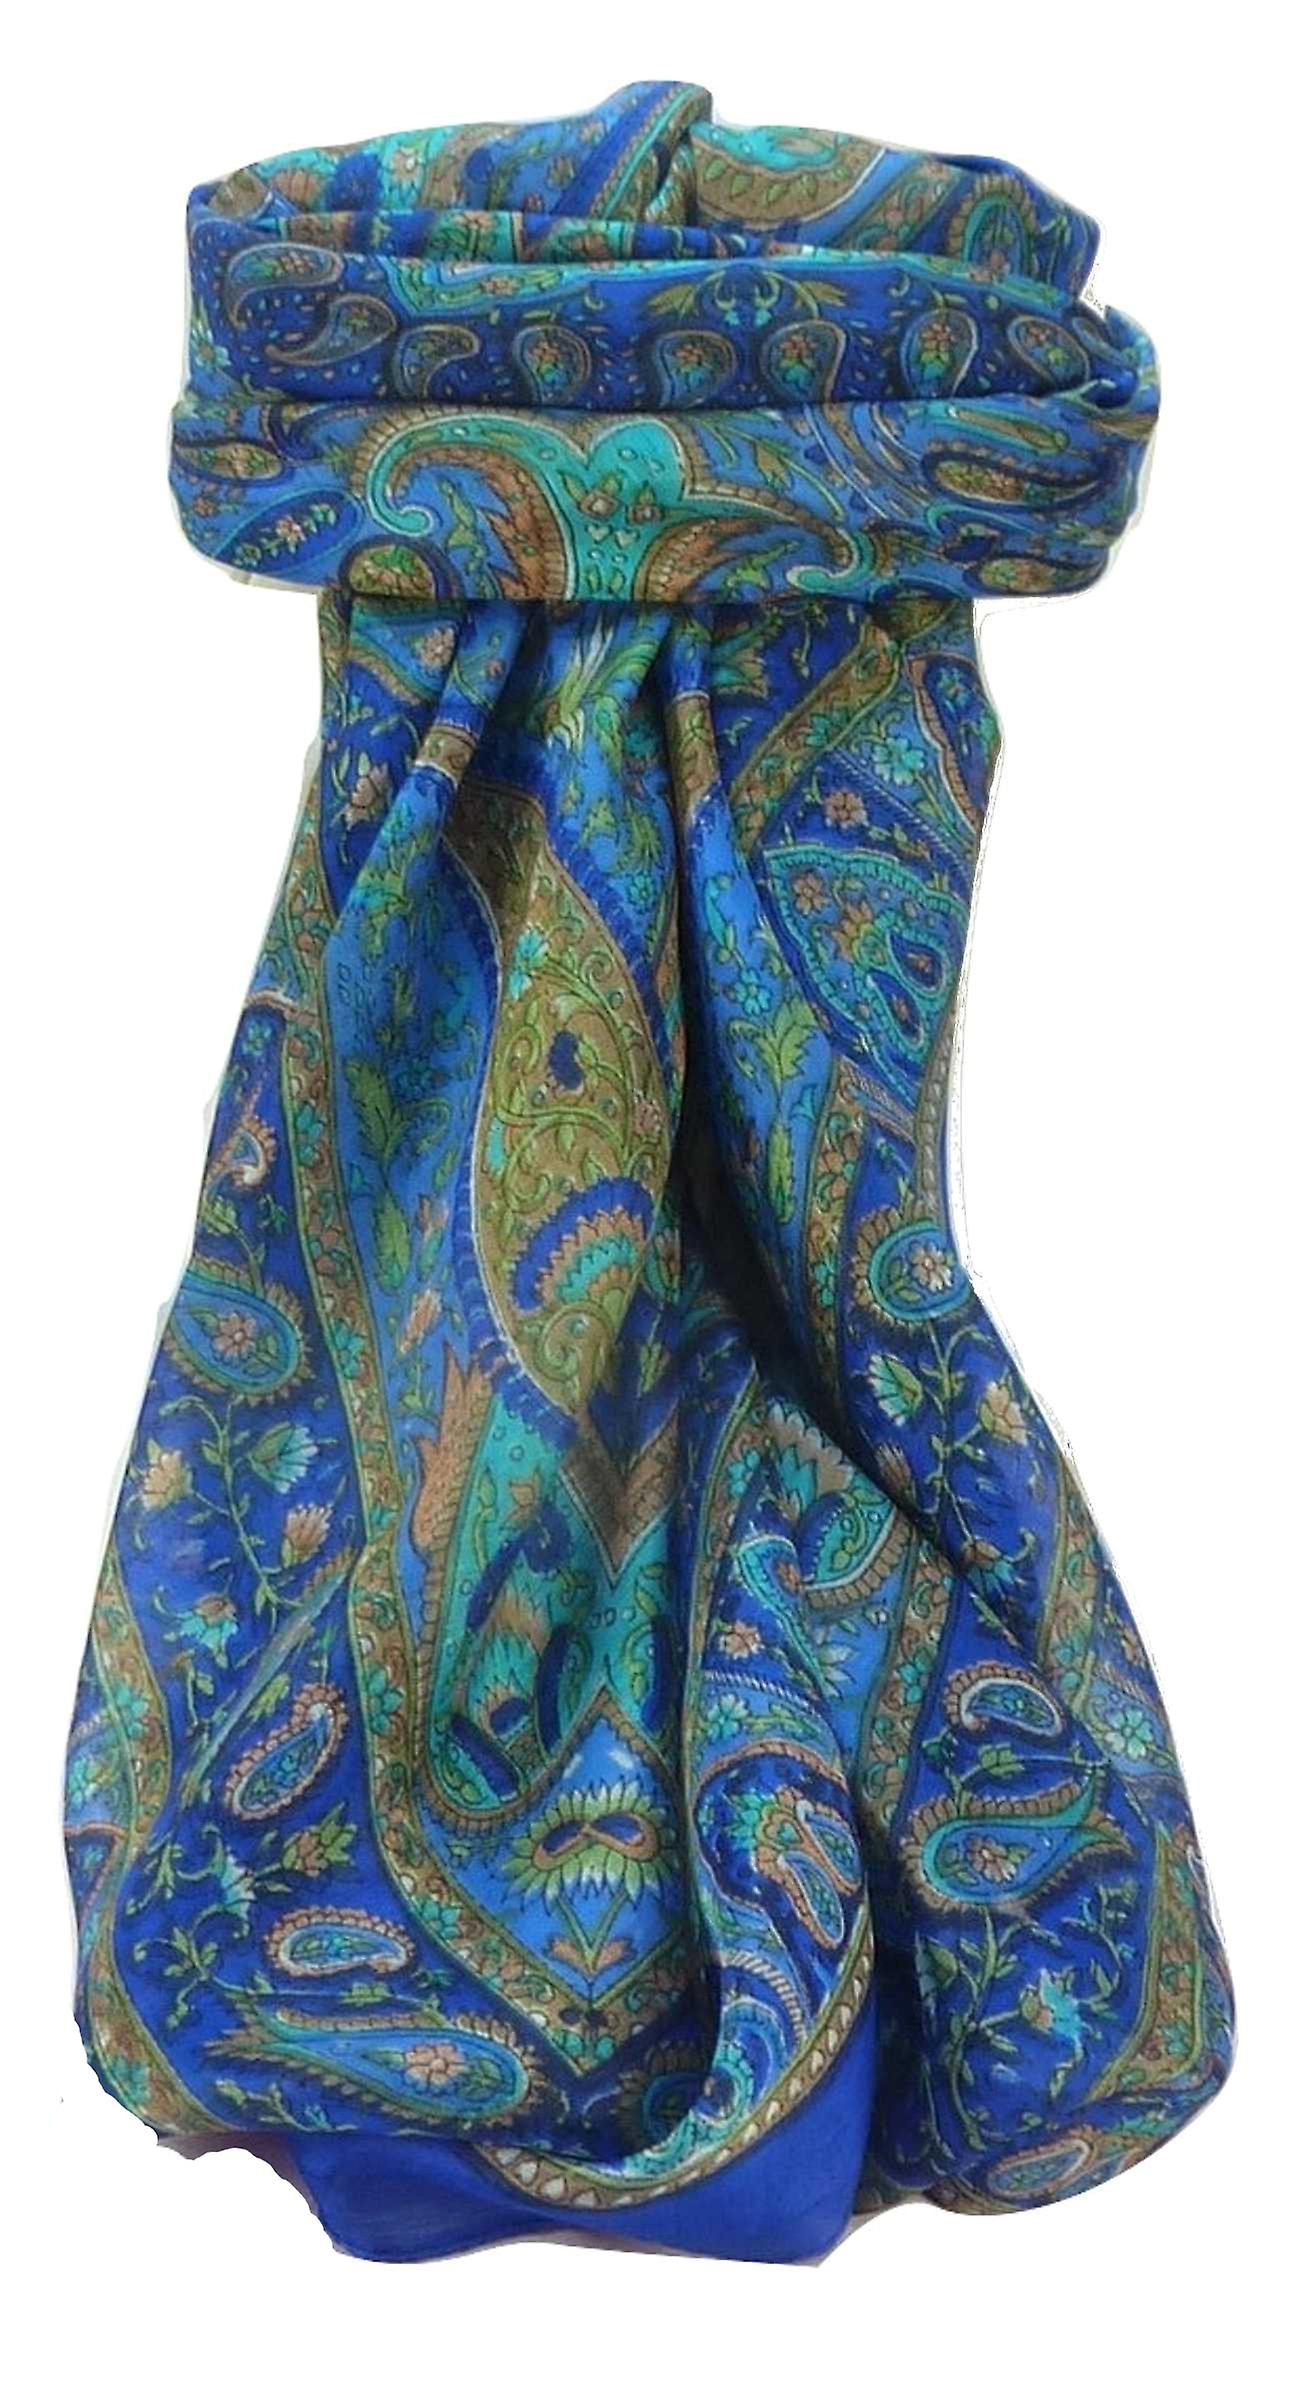 Mulberry Silk Traditional Square Scarf Zoi Blue by Pashmina & Silk